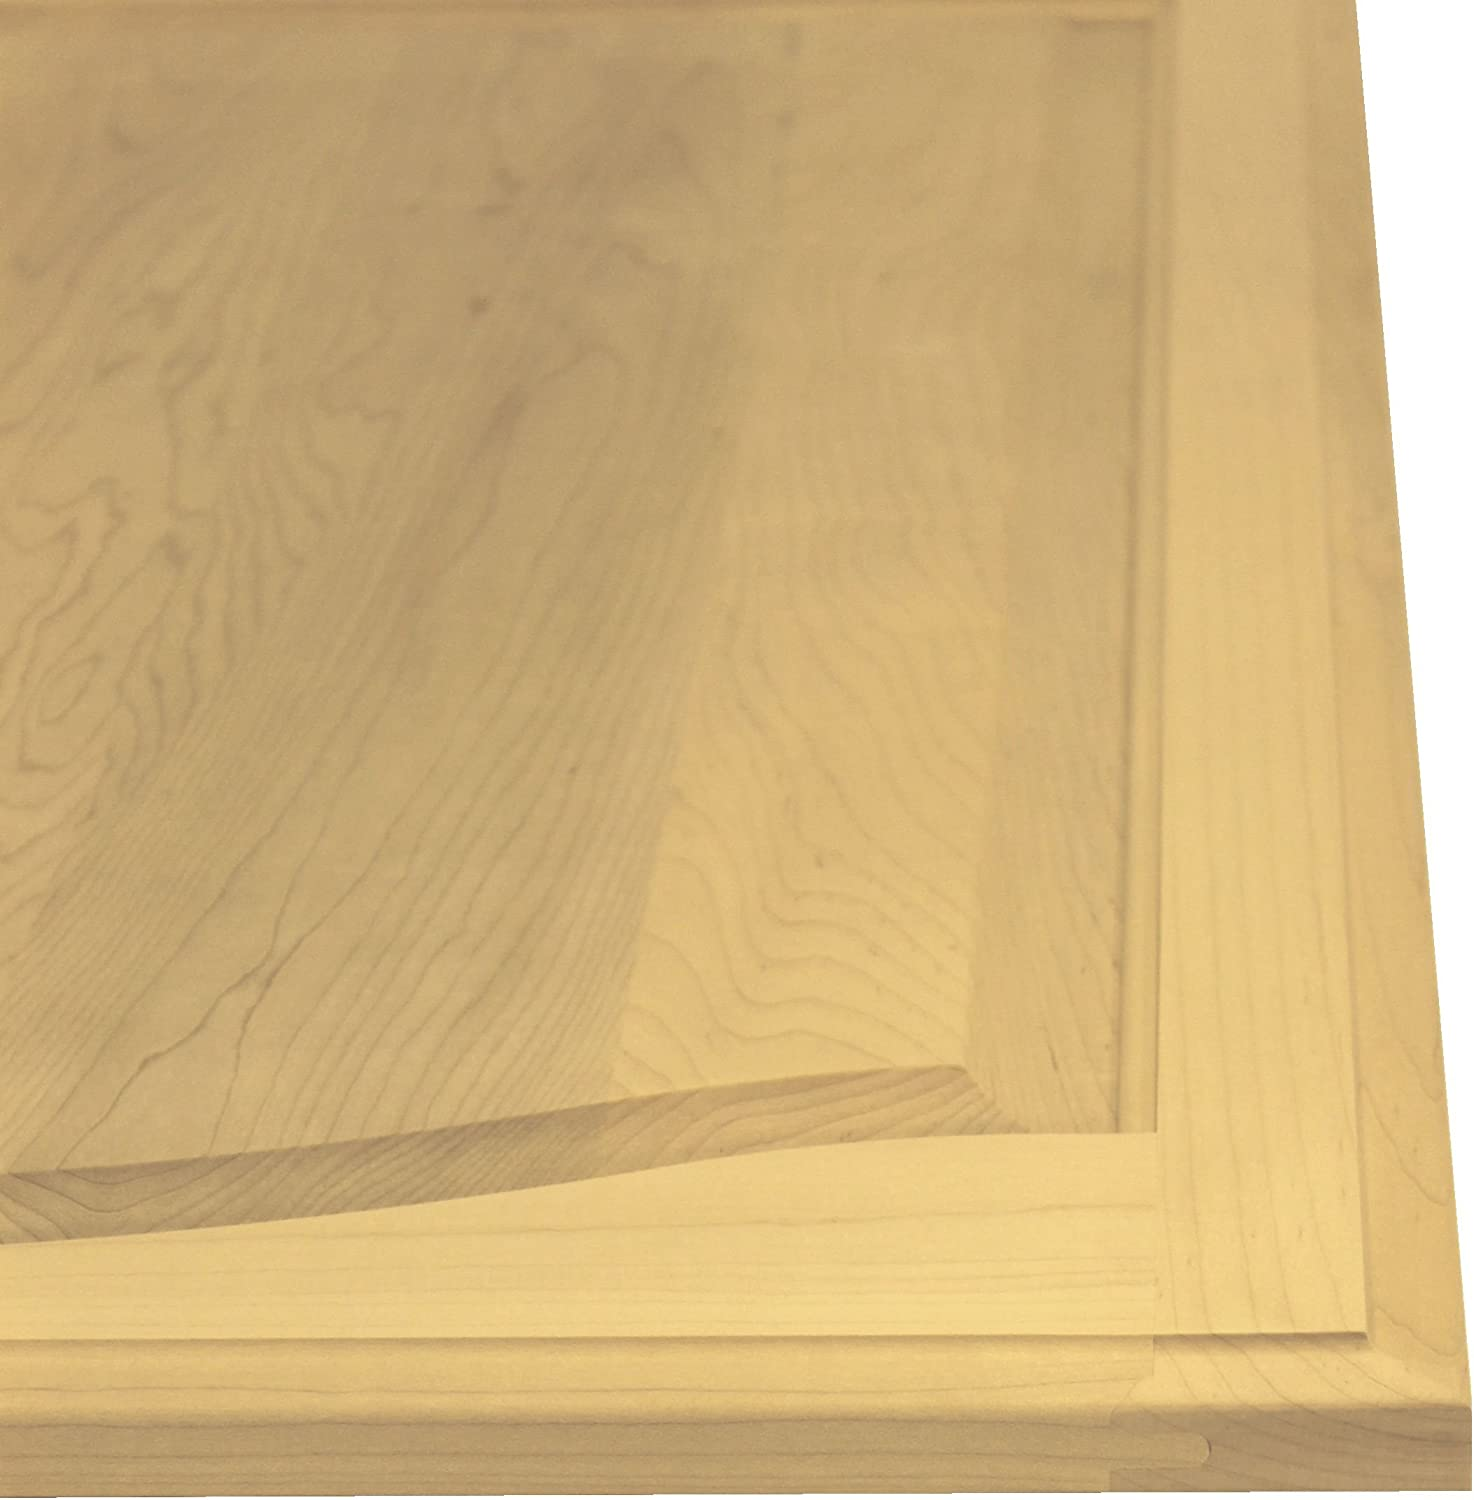 22 High x 22 Wide Unfinished Maple Arch Top Cabinet Door by Kendor